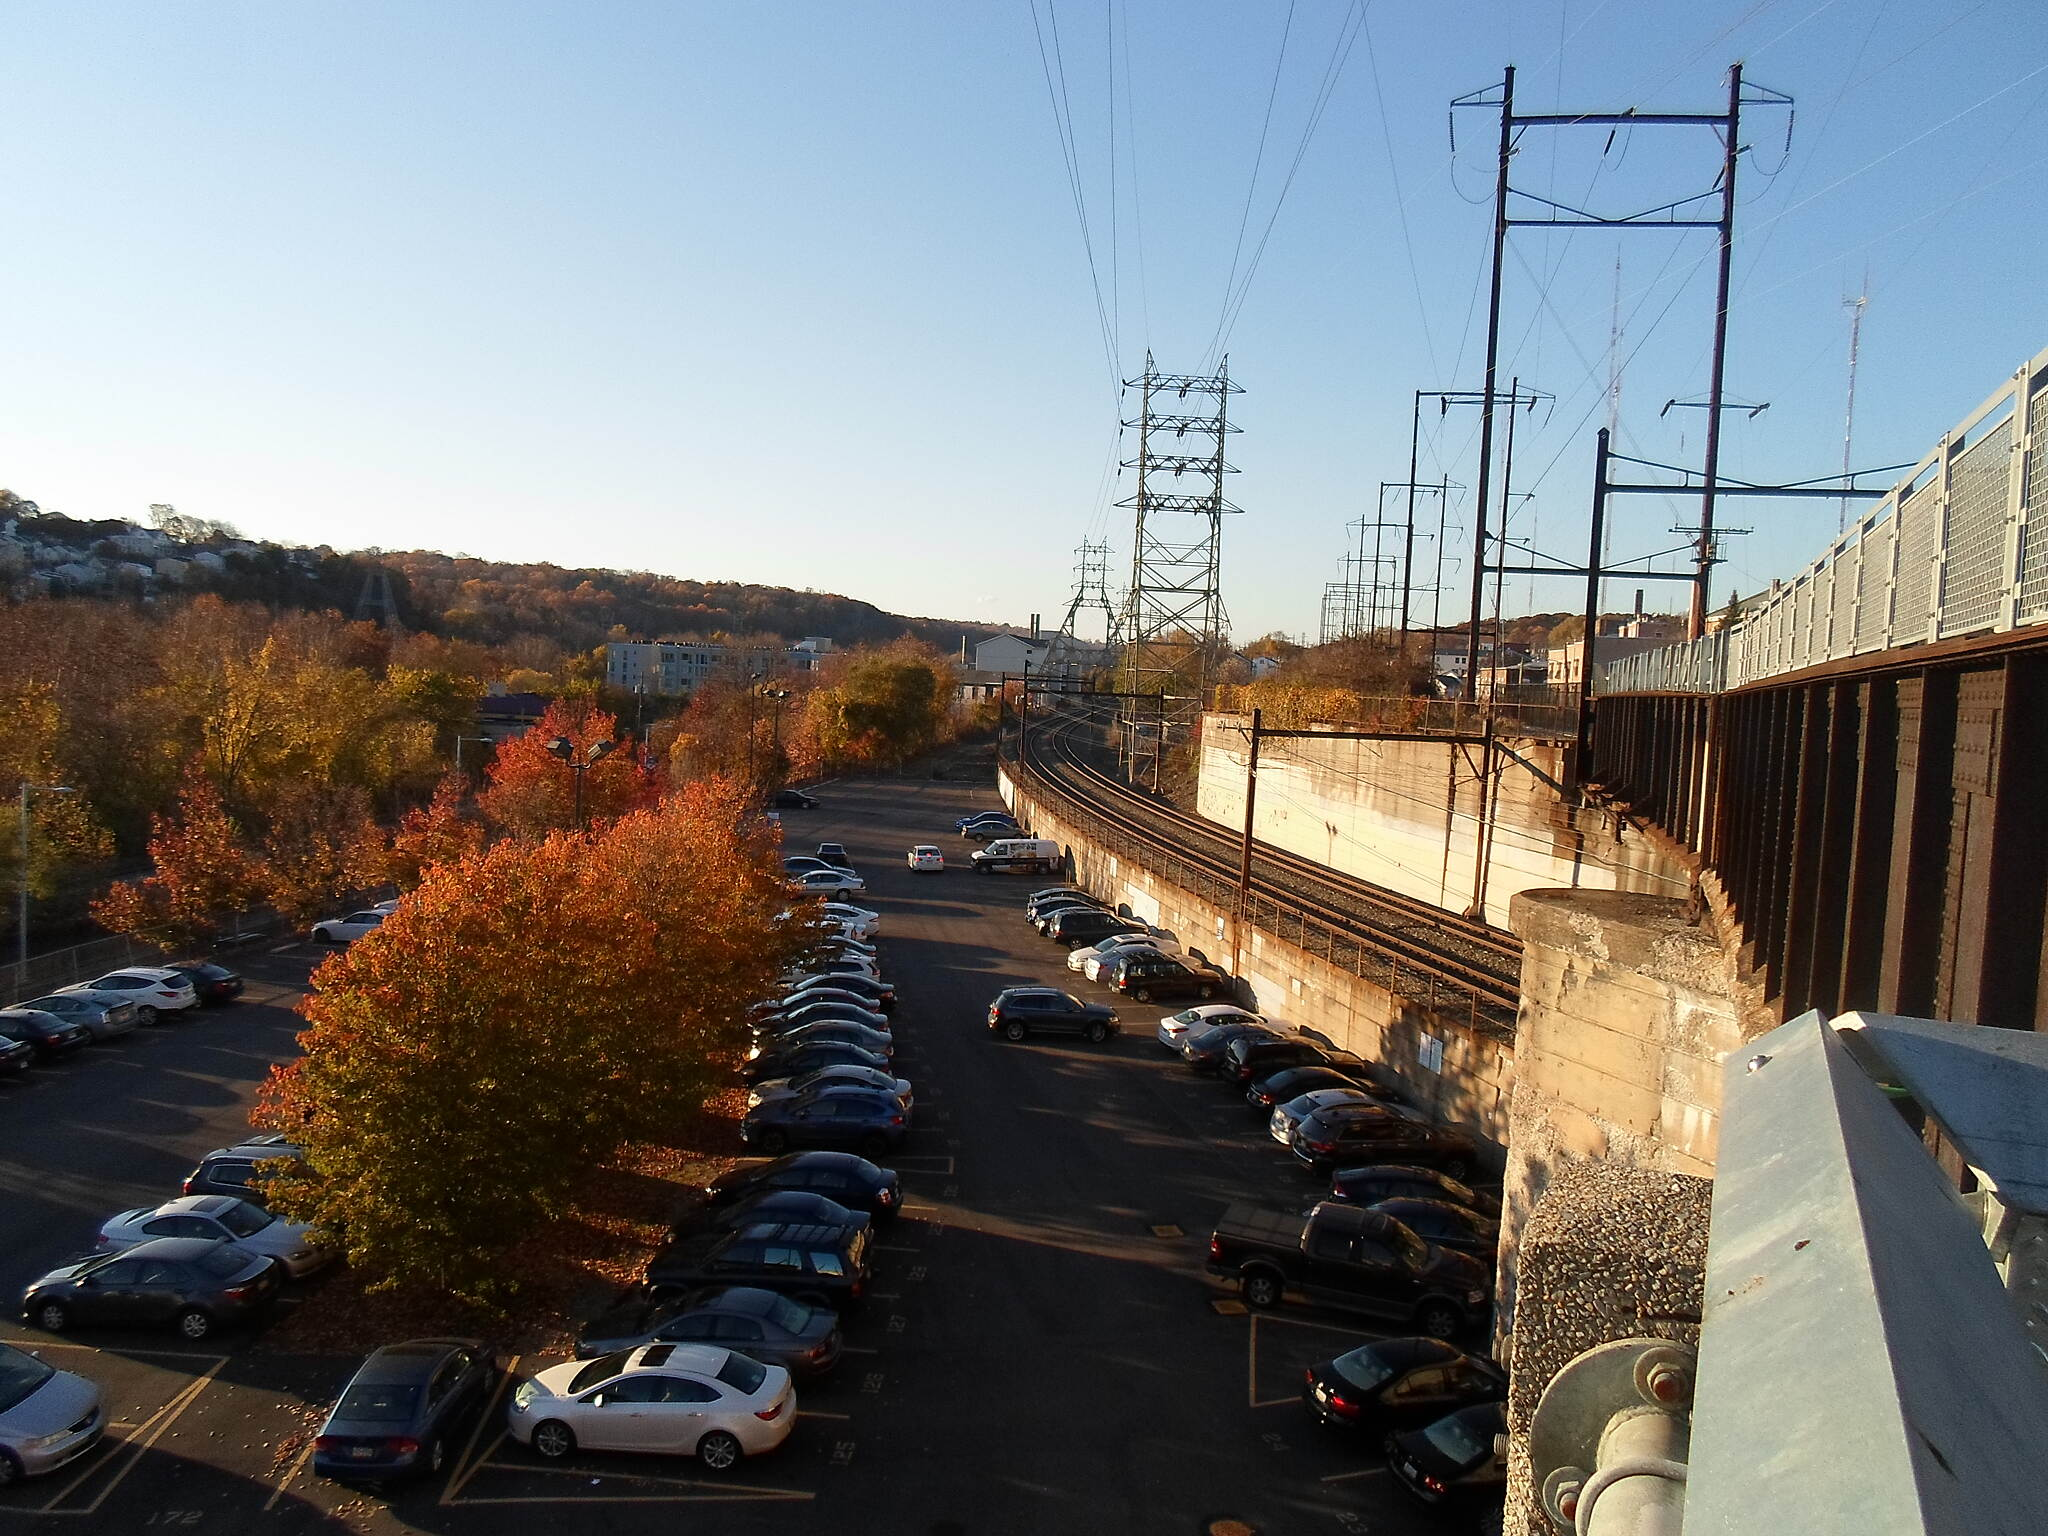 Manayunk Bridge Trail Manayunk Bridge Trail View out the west side of trestle near the northern approach in Manayunk. The active Norfolk Southern/SEPTA line can be seen on the left. Taken Nov. 2015.